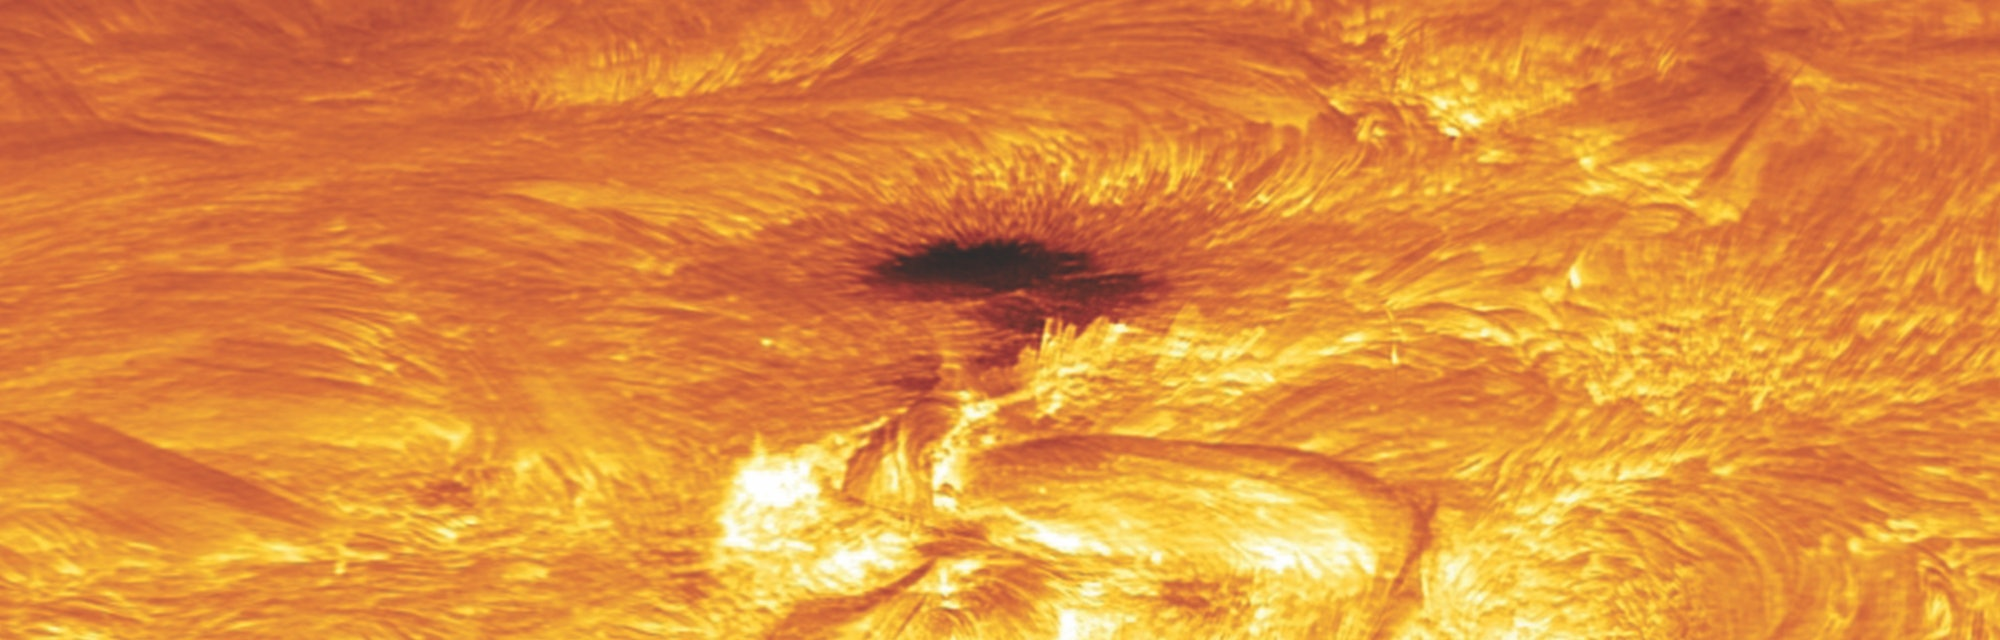 A close up of the Sun's surface showing the boiling hot plasma.